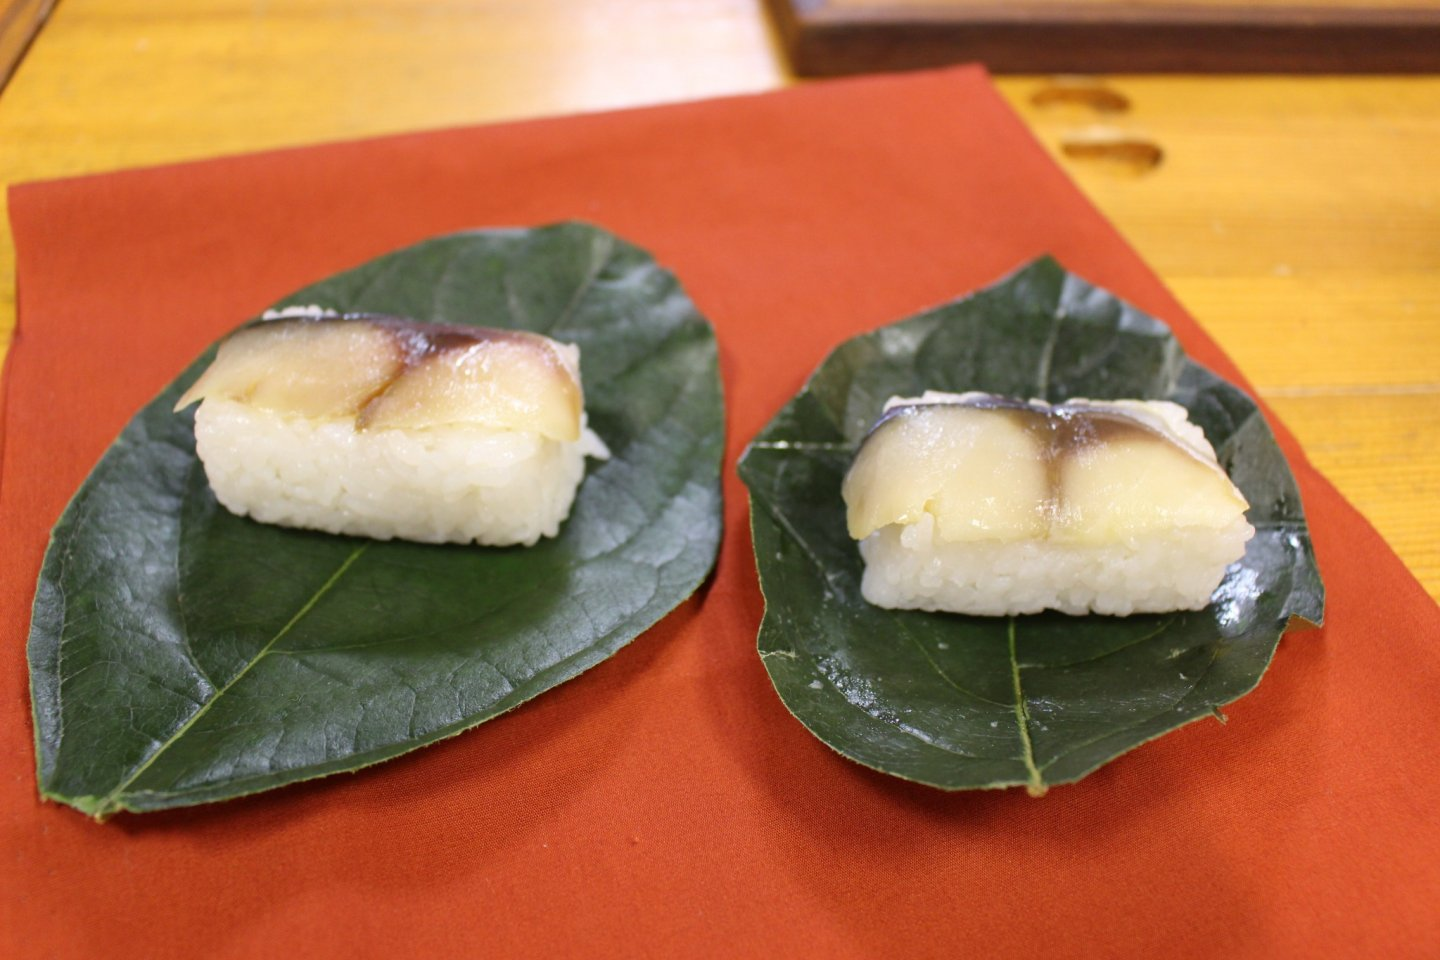 Mackerel kakinohazushi unwrapped and ready to be eaten